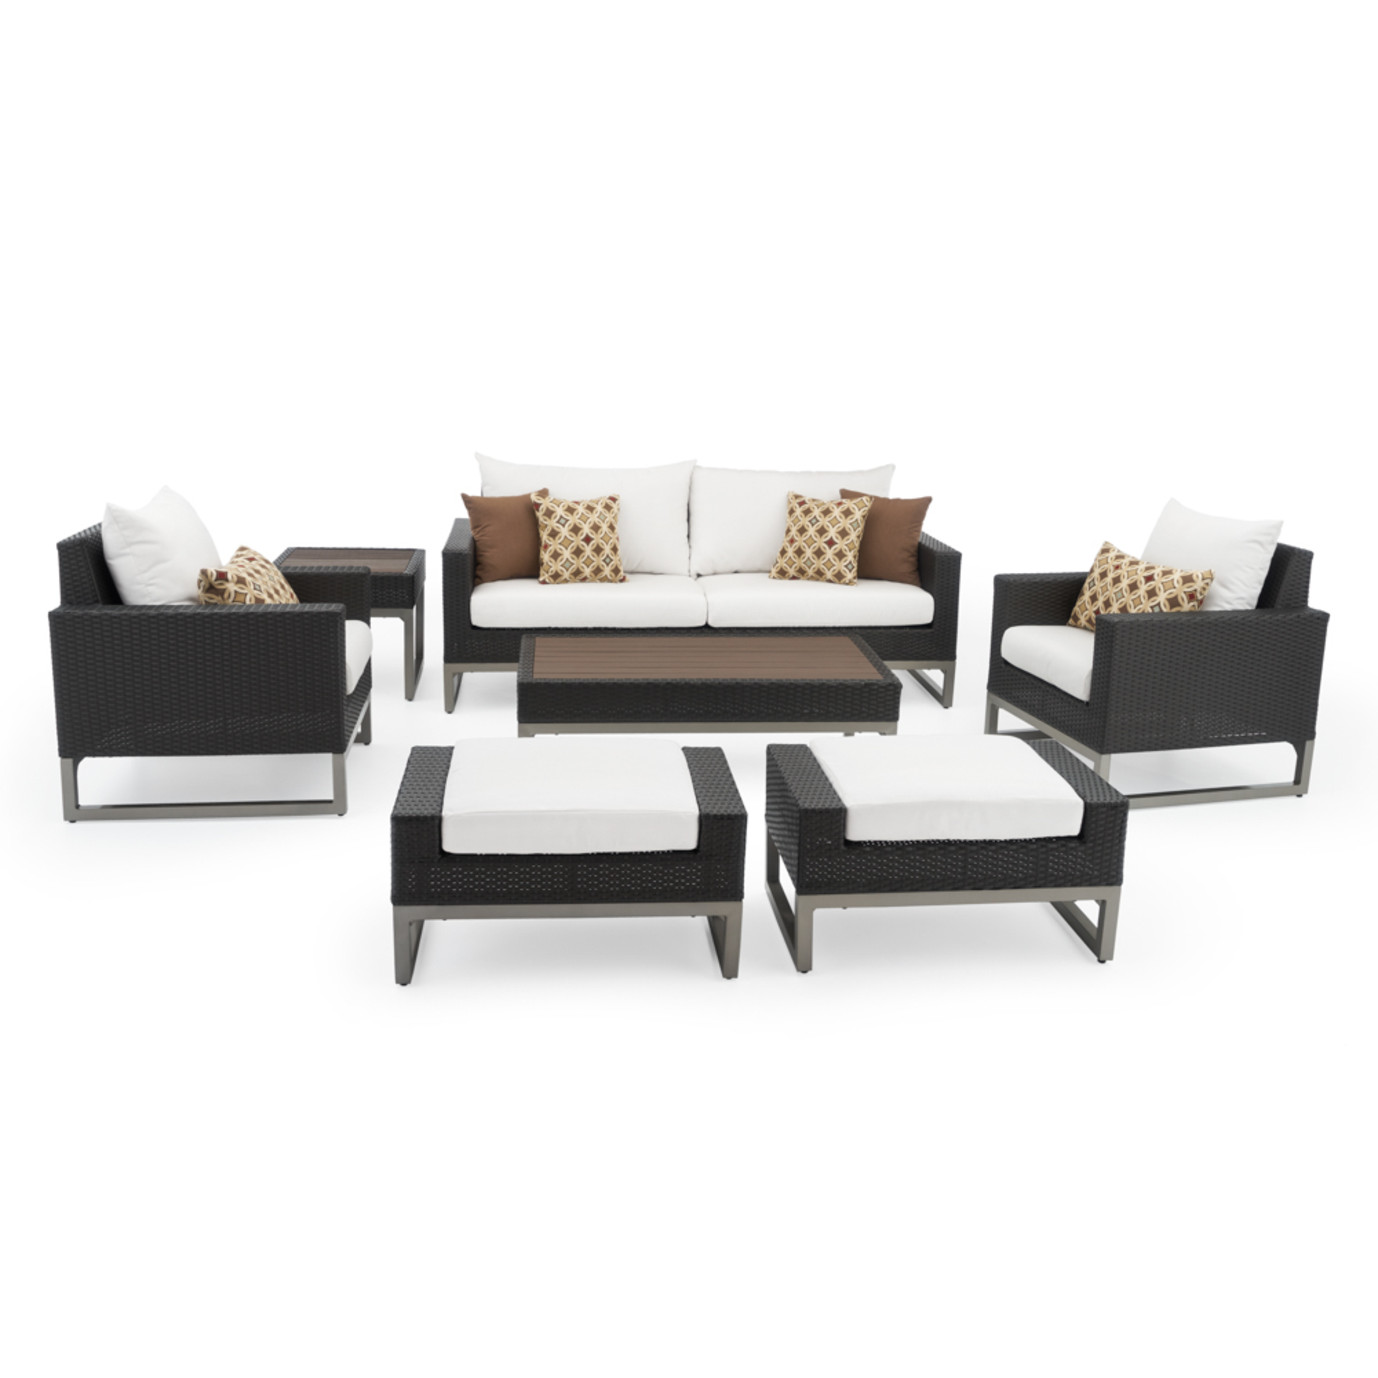 Milo™ Espresso 7pc Deep Seating Set - Moroccan Cream